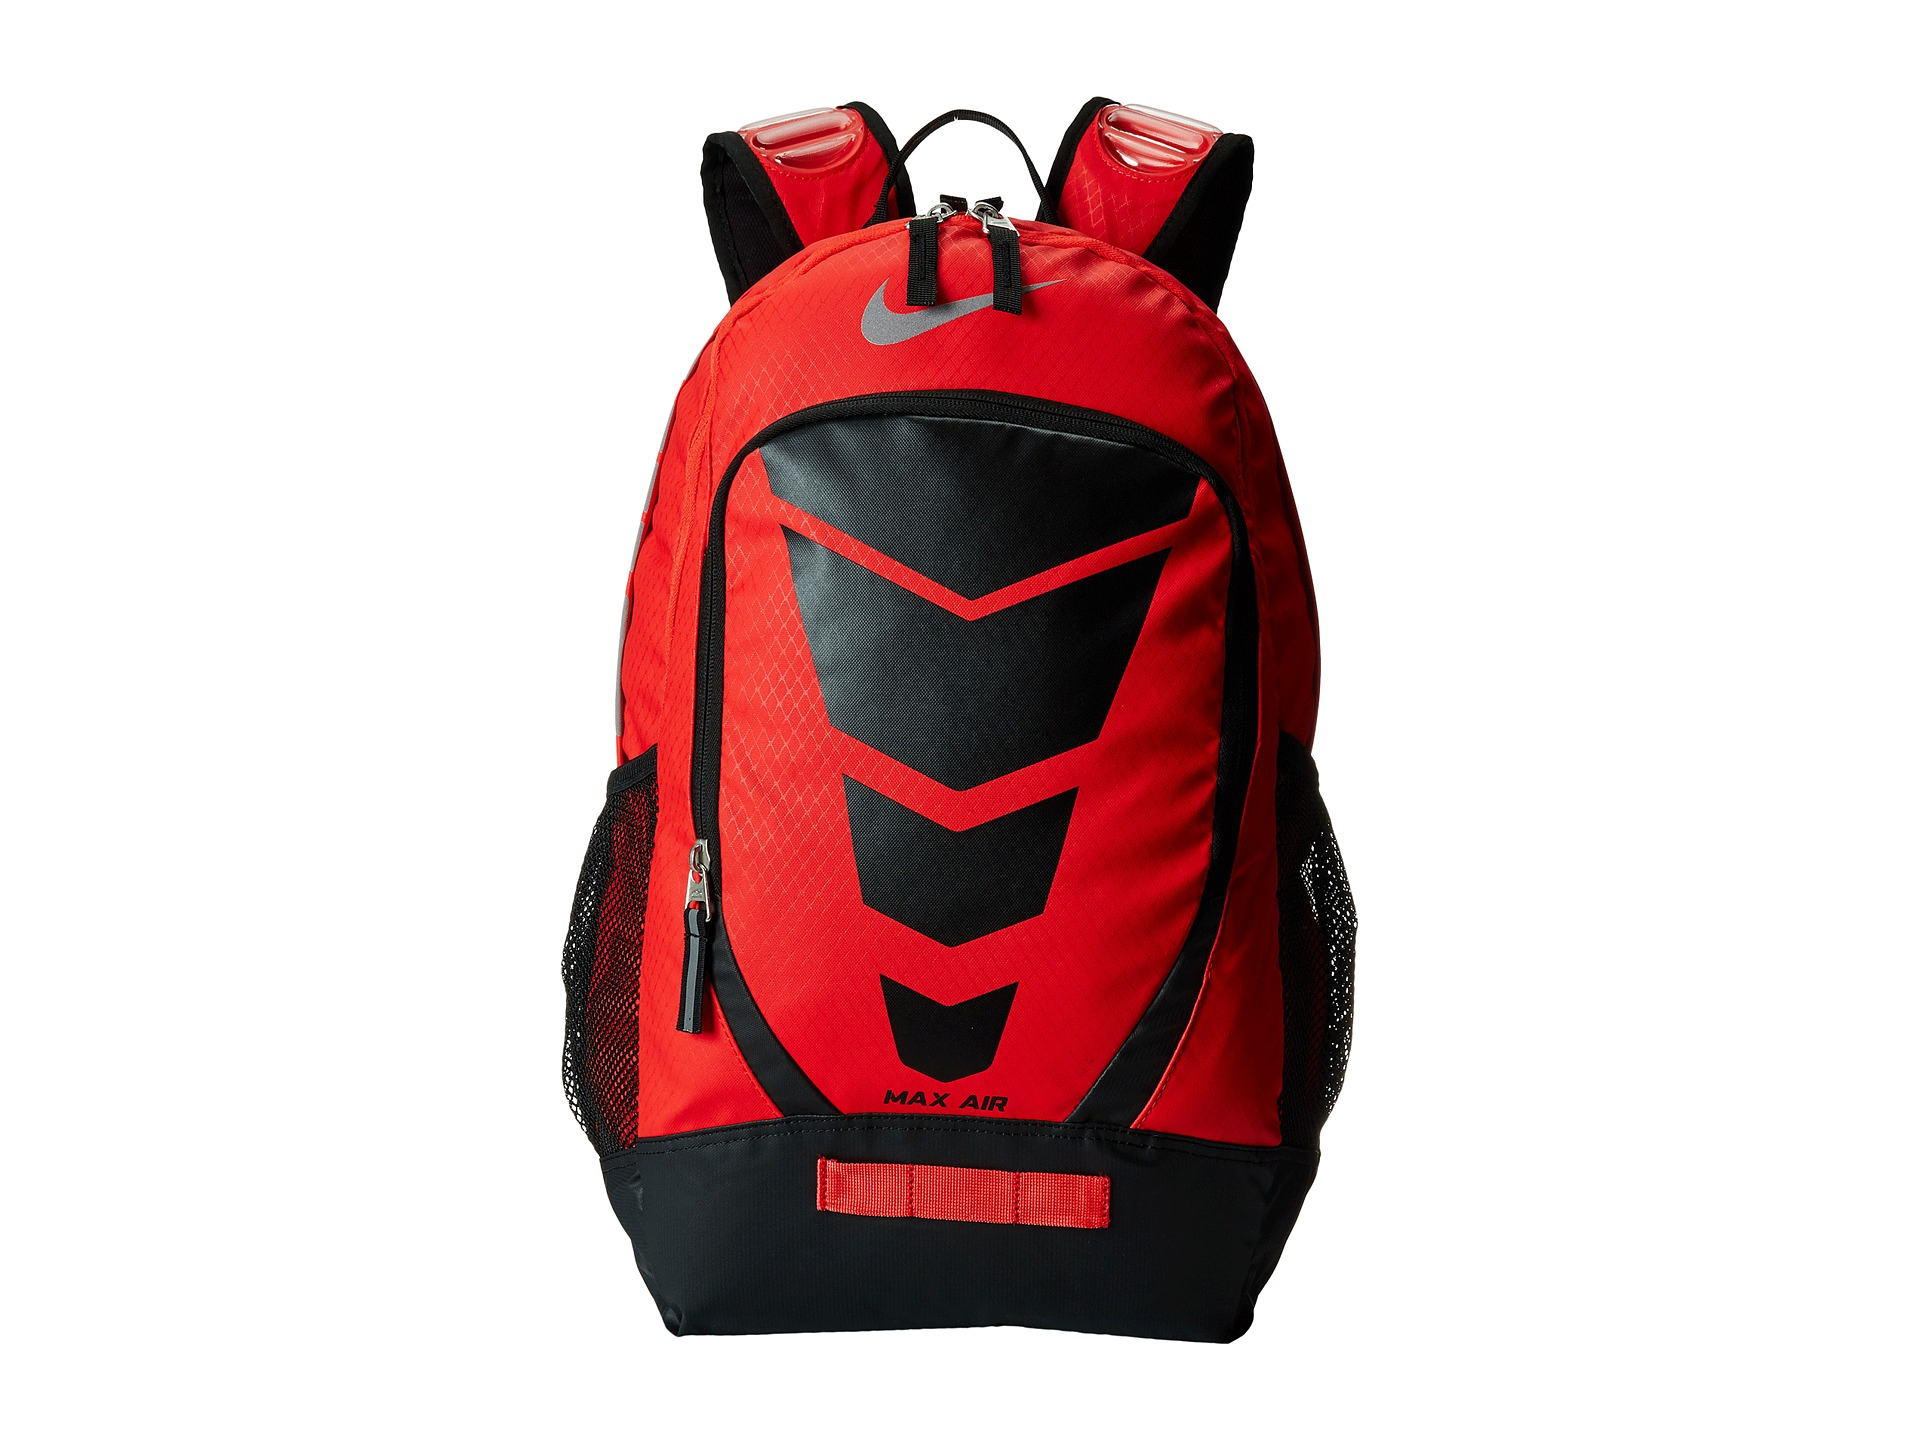 ... shop 08734 0b72e Lyst - Nike Max Air Vapor Backpack in Red for Men ... a40c2d5f65